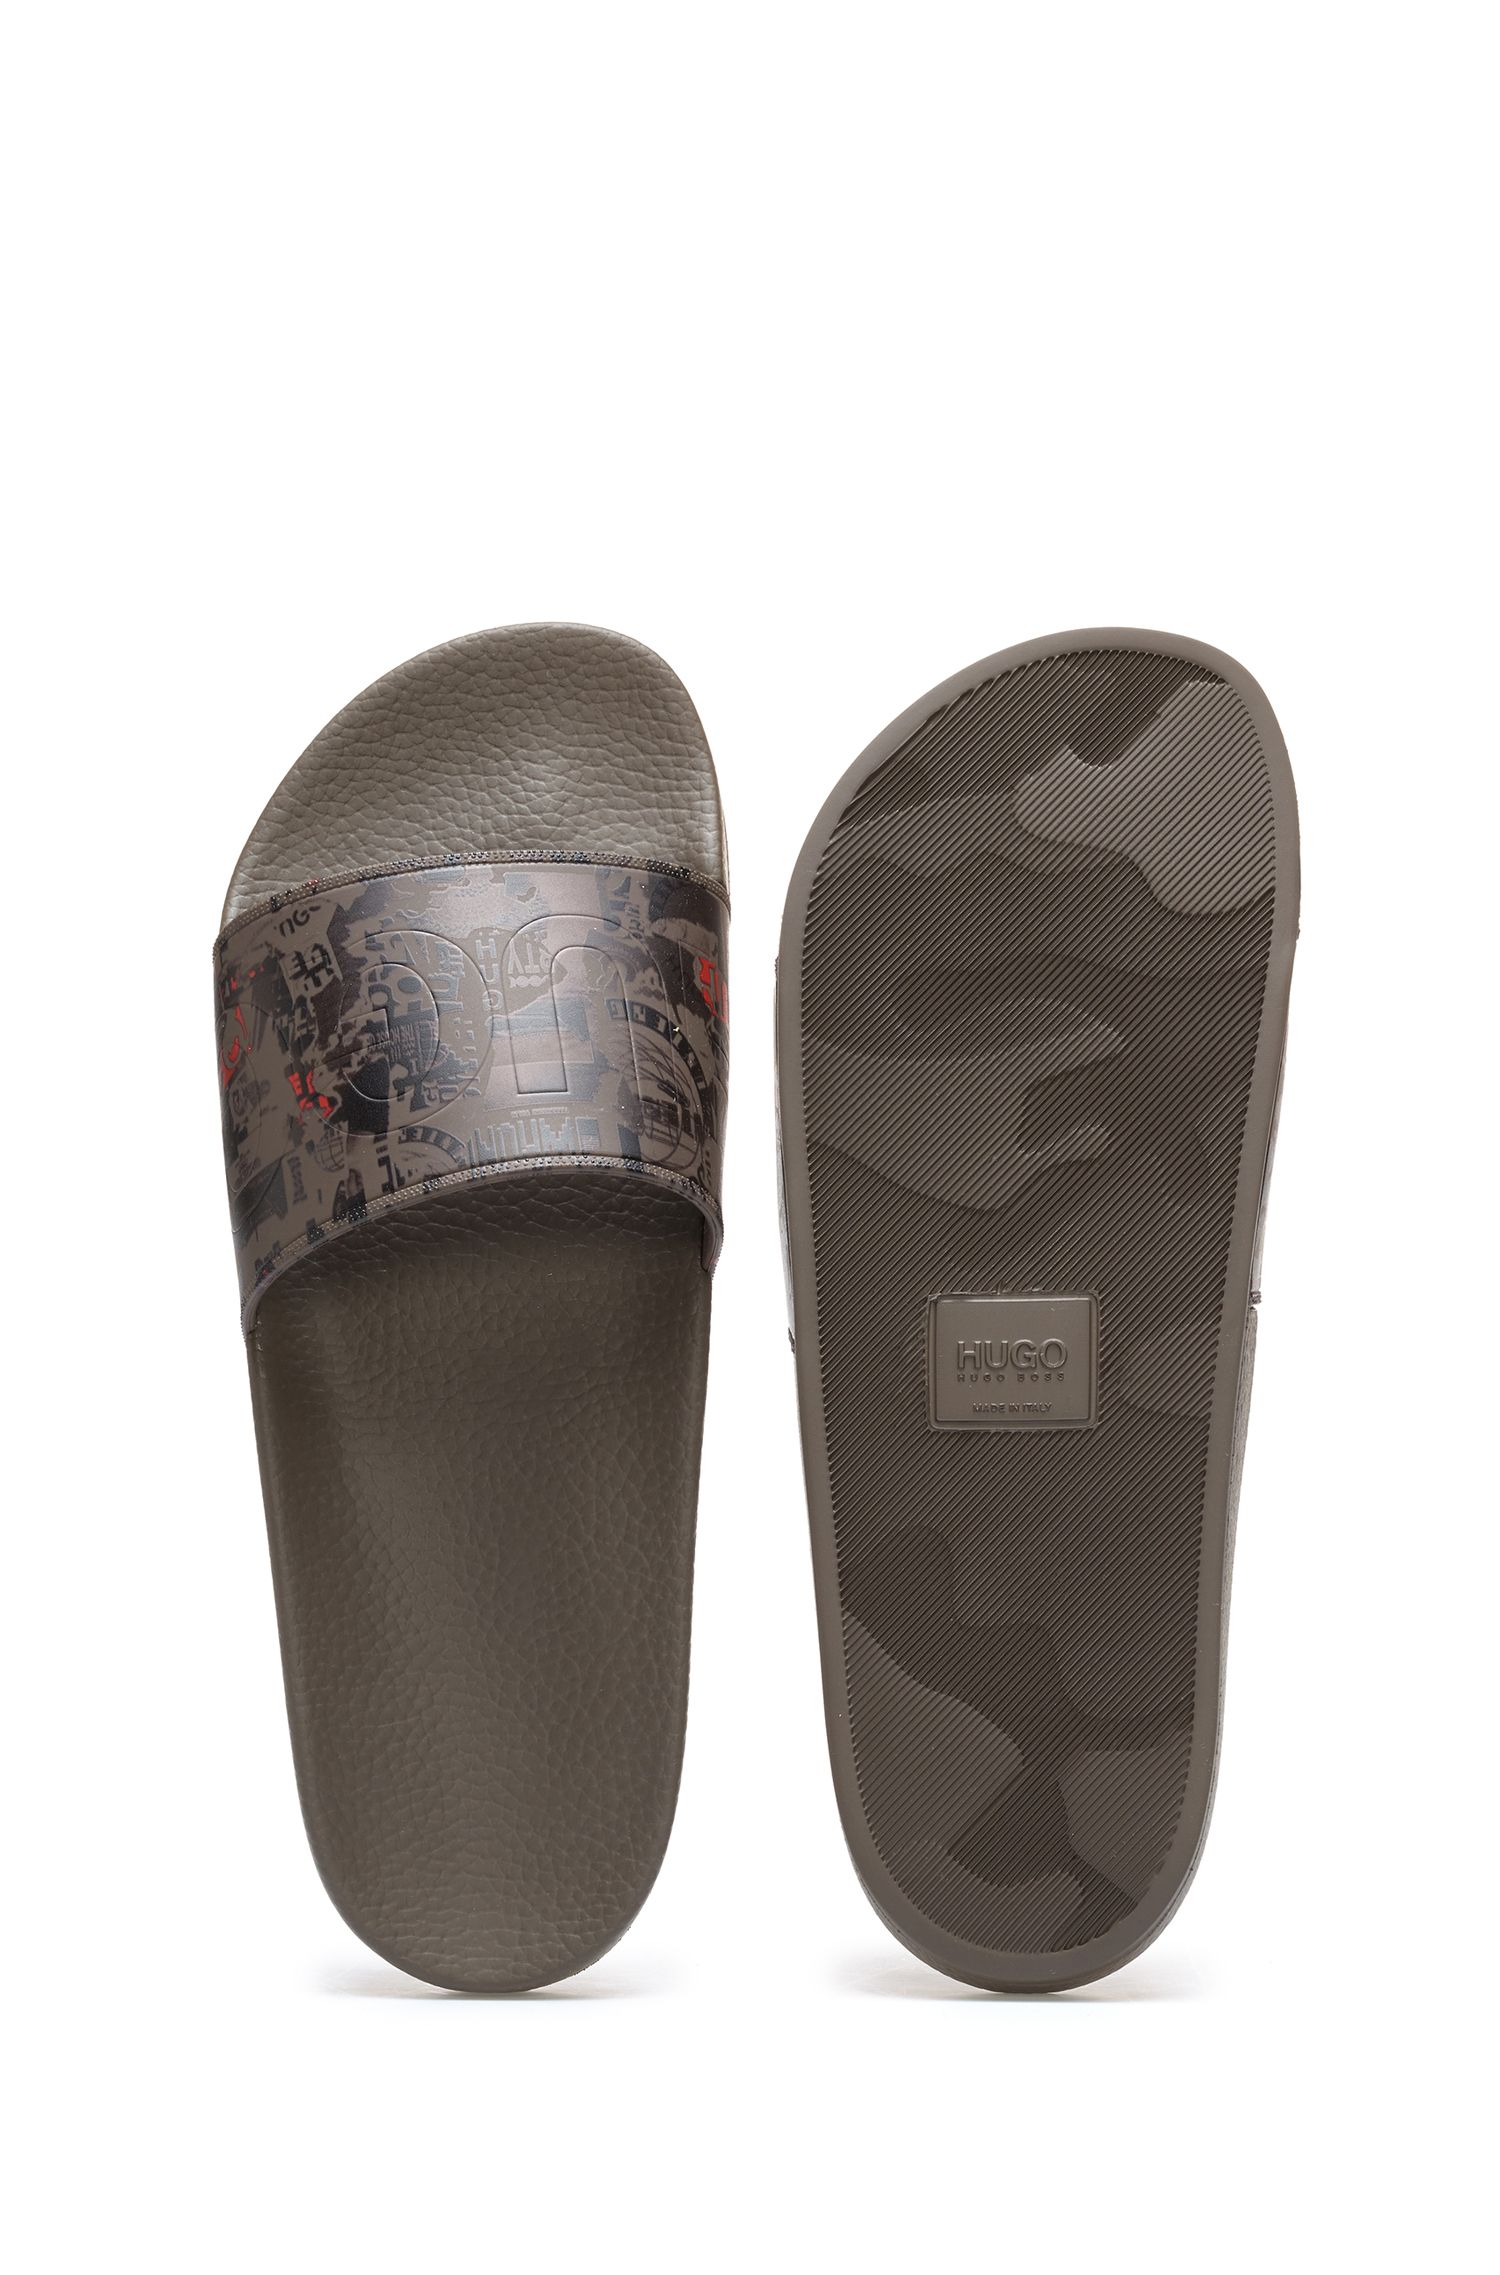 Printed slides with embossed logo, Patterned